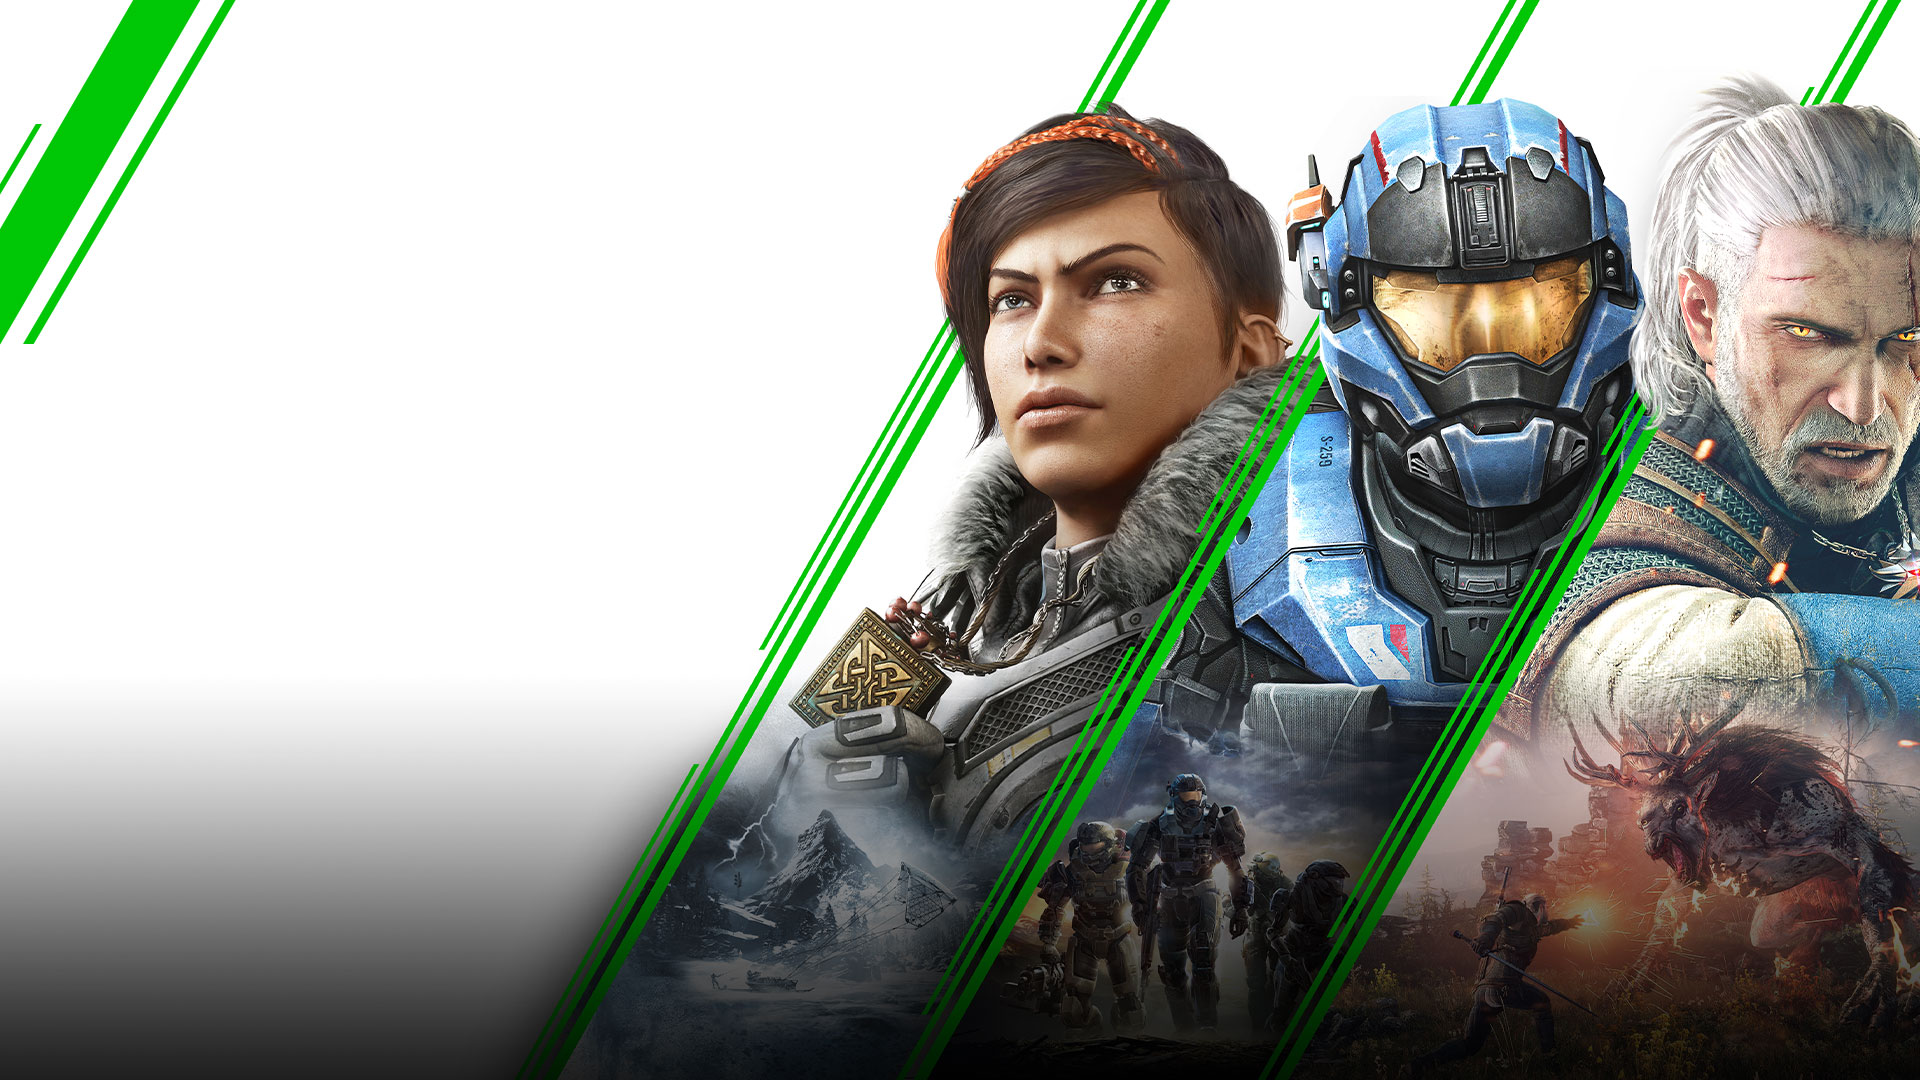 Jouez à Gears 5, Halo Reach et The Witcher avec le Xbox Game Pass Ultimate